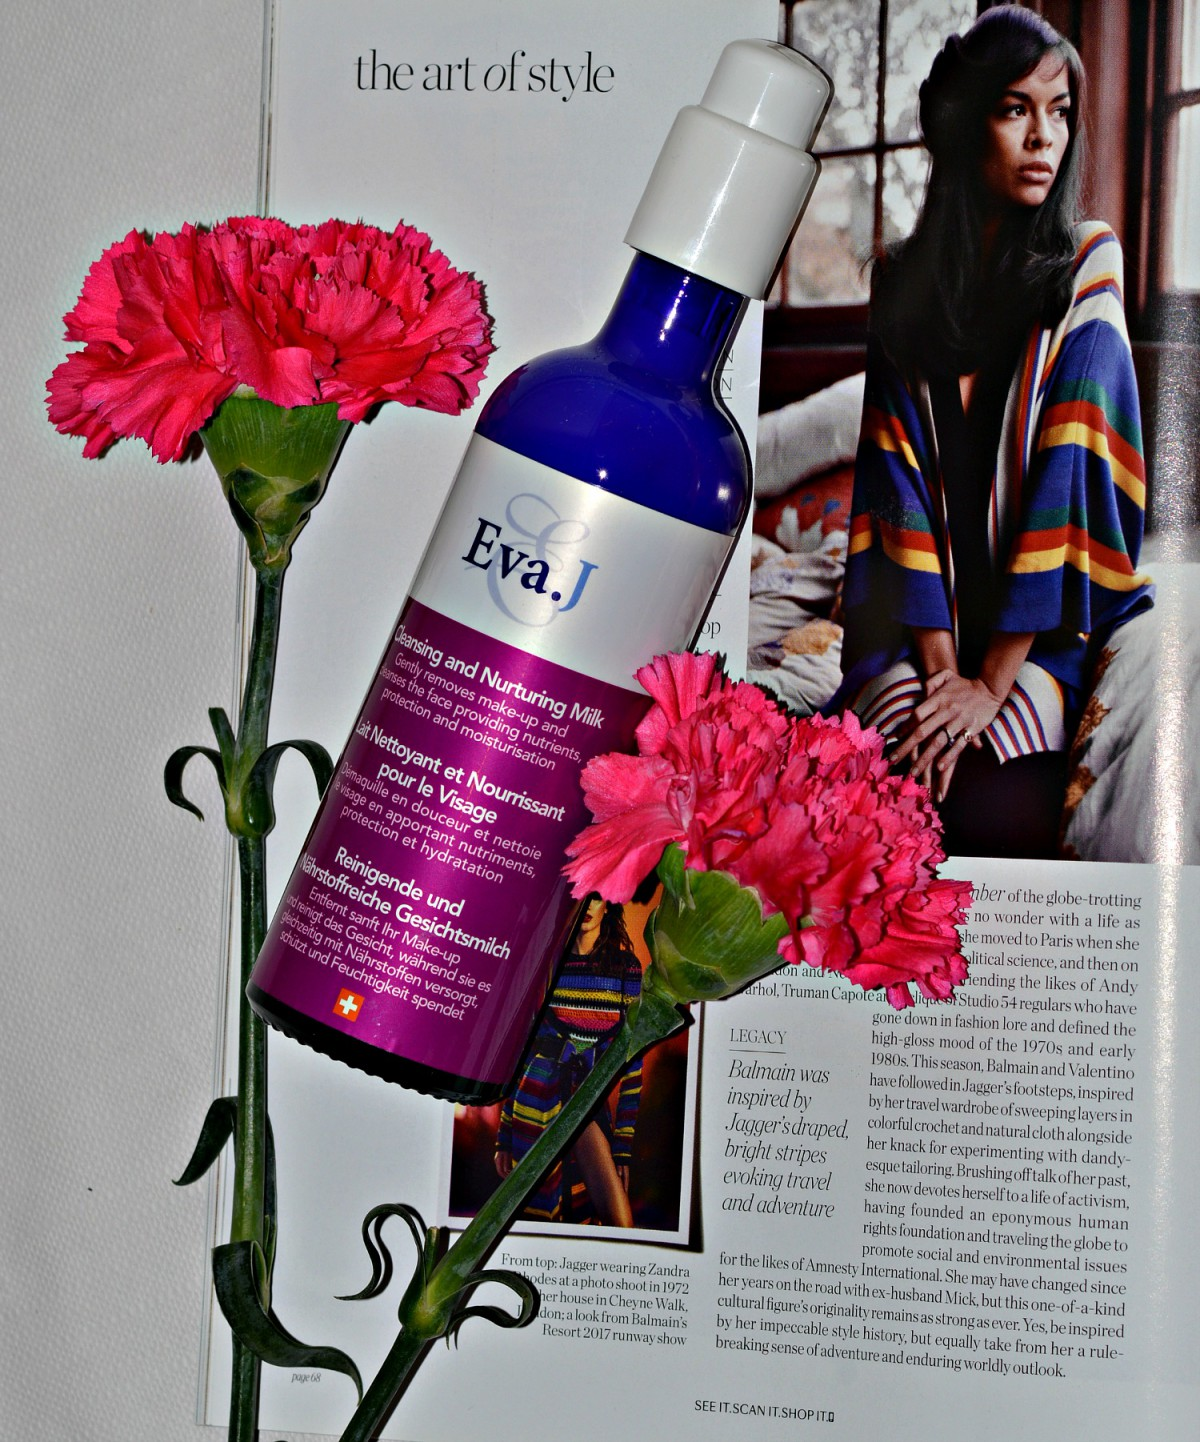 Eva.J cosmetics/cleansing and nurturing milk